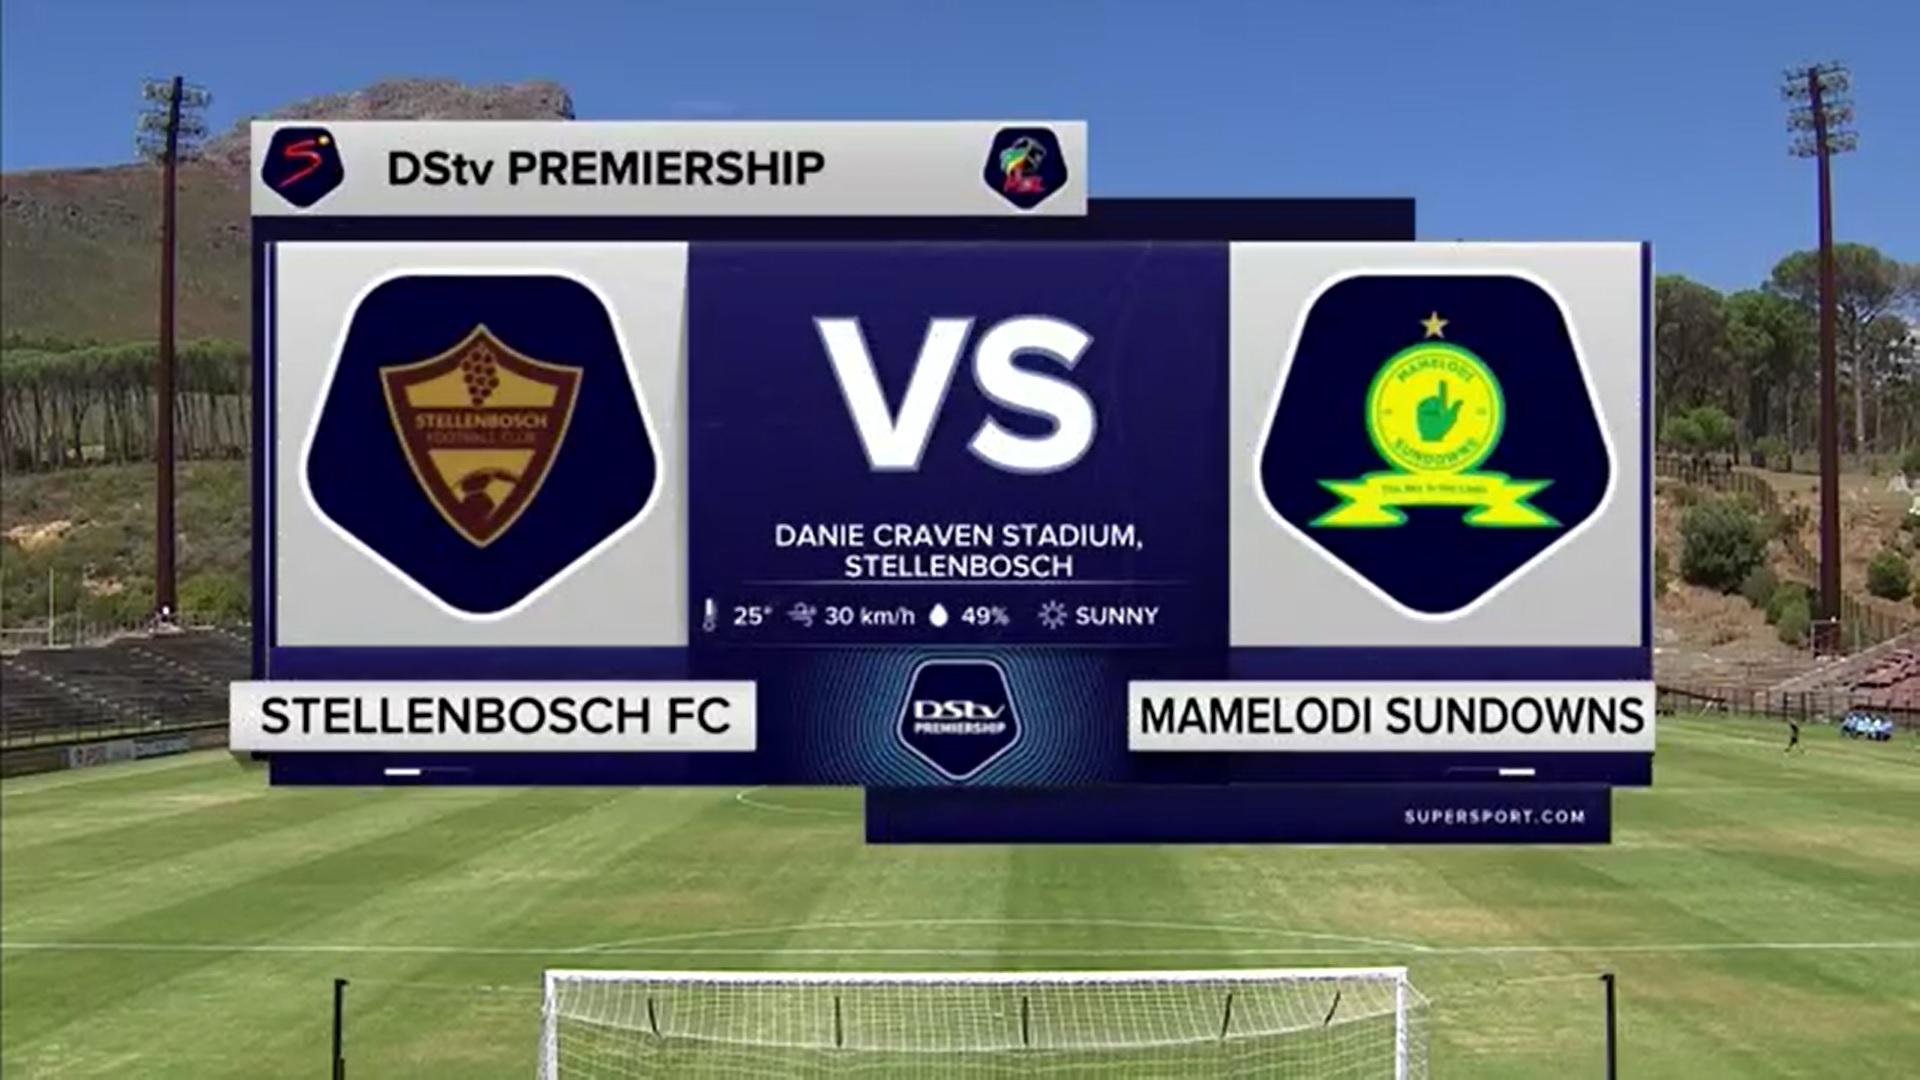 DStv Premiership | Stellenbosch FC v Mamelodi Sundowns | Highlights